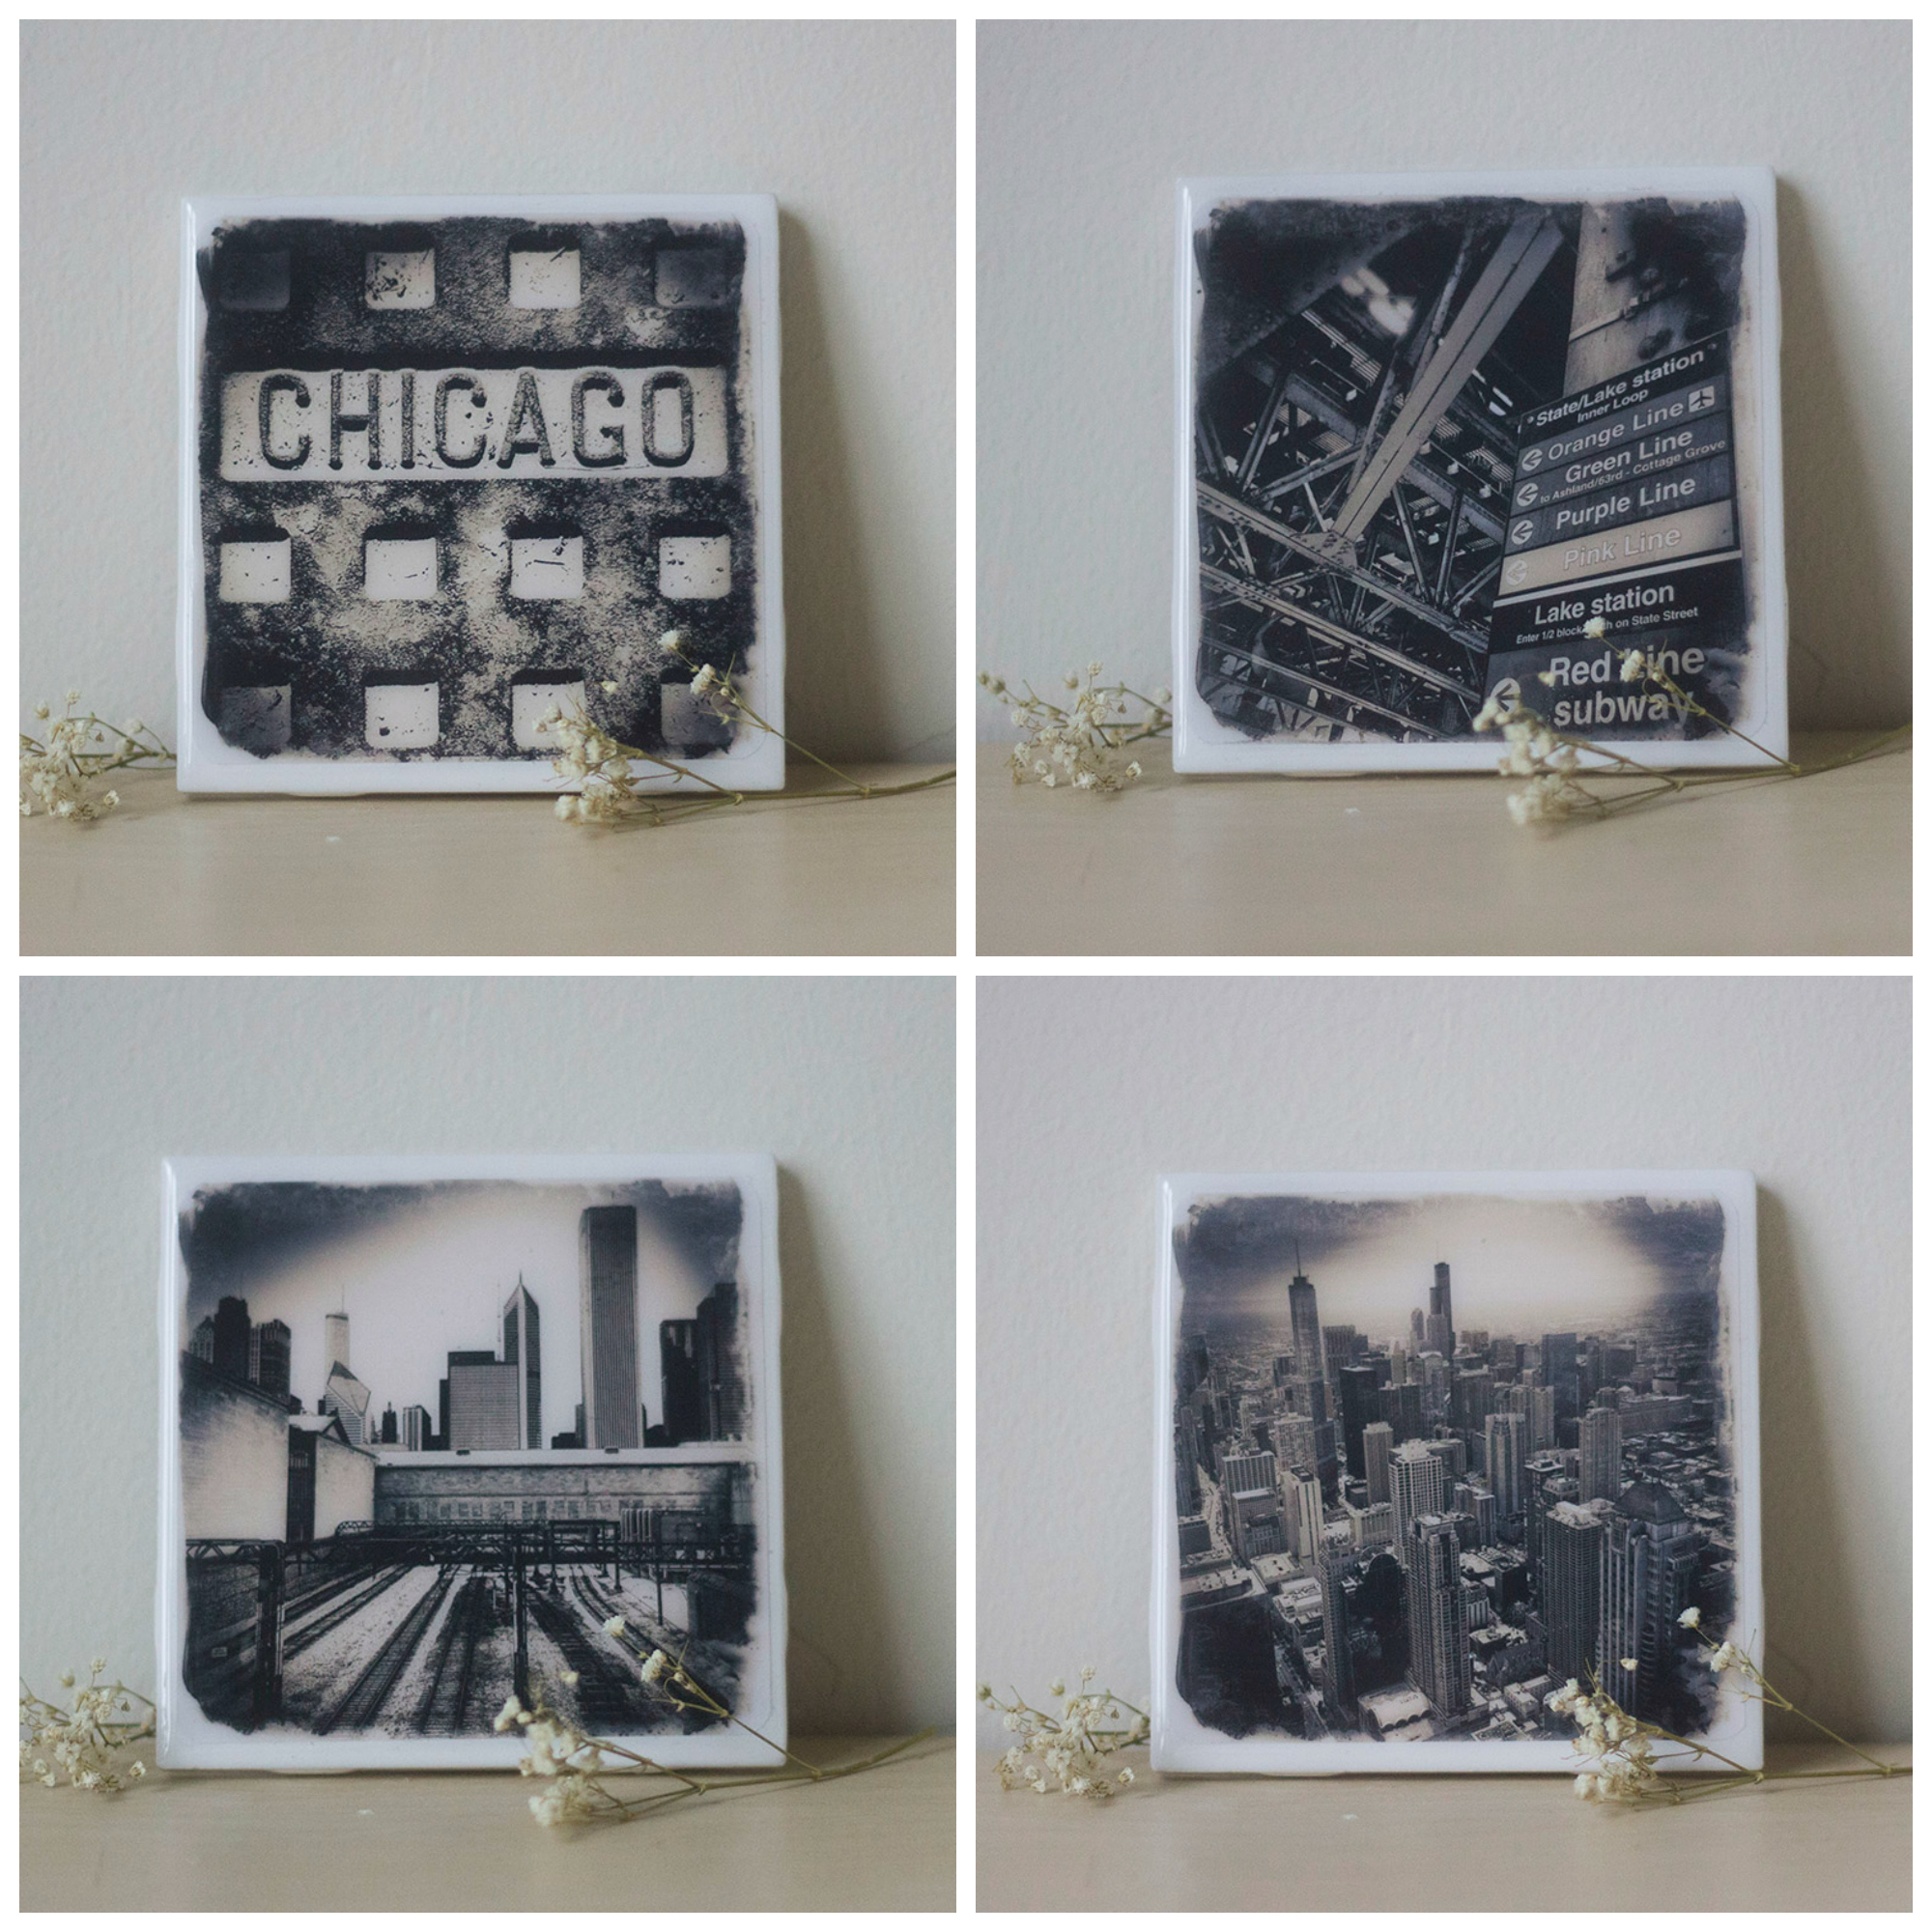 CHICAGOCOLLAGE.jpg